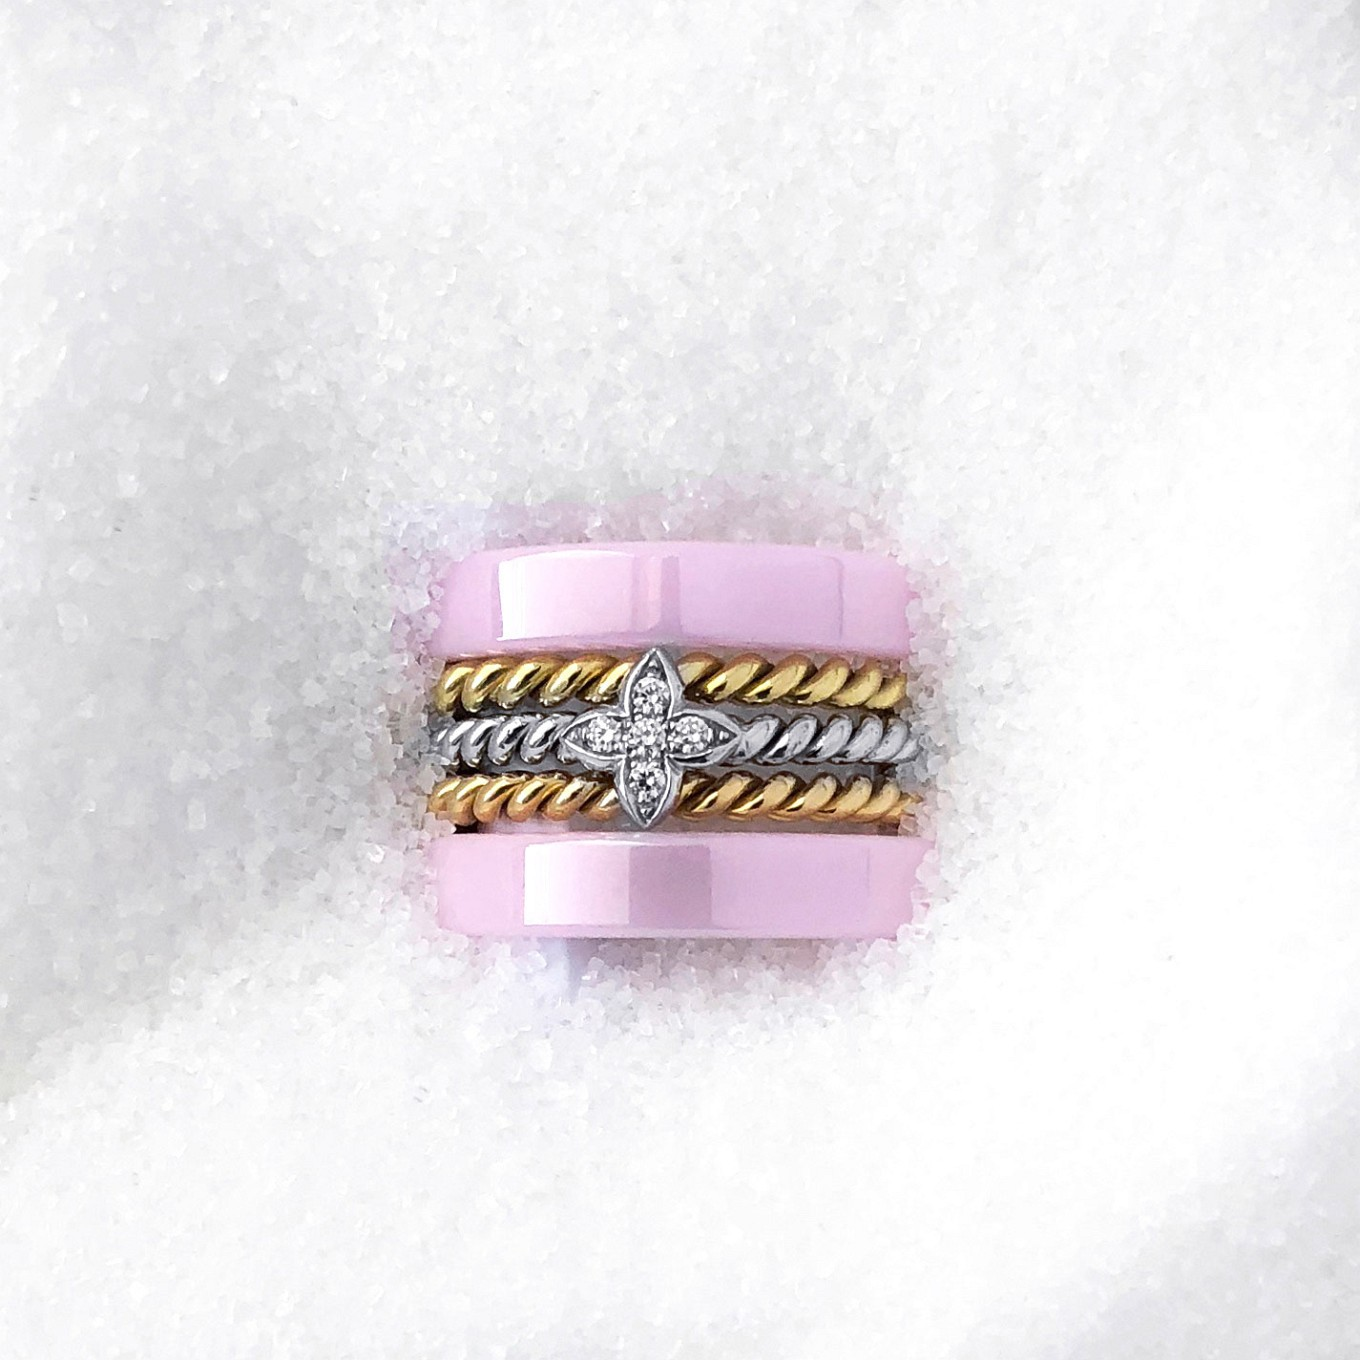 DIAMOND, GOLD & PINK CERAMIC STACKING RINGS